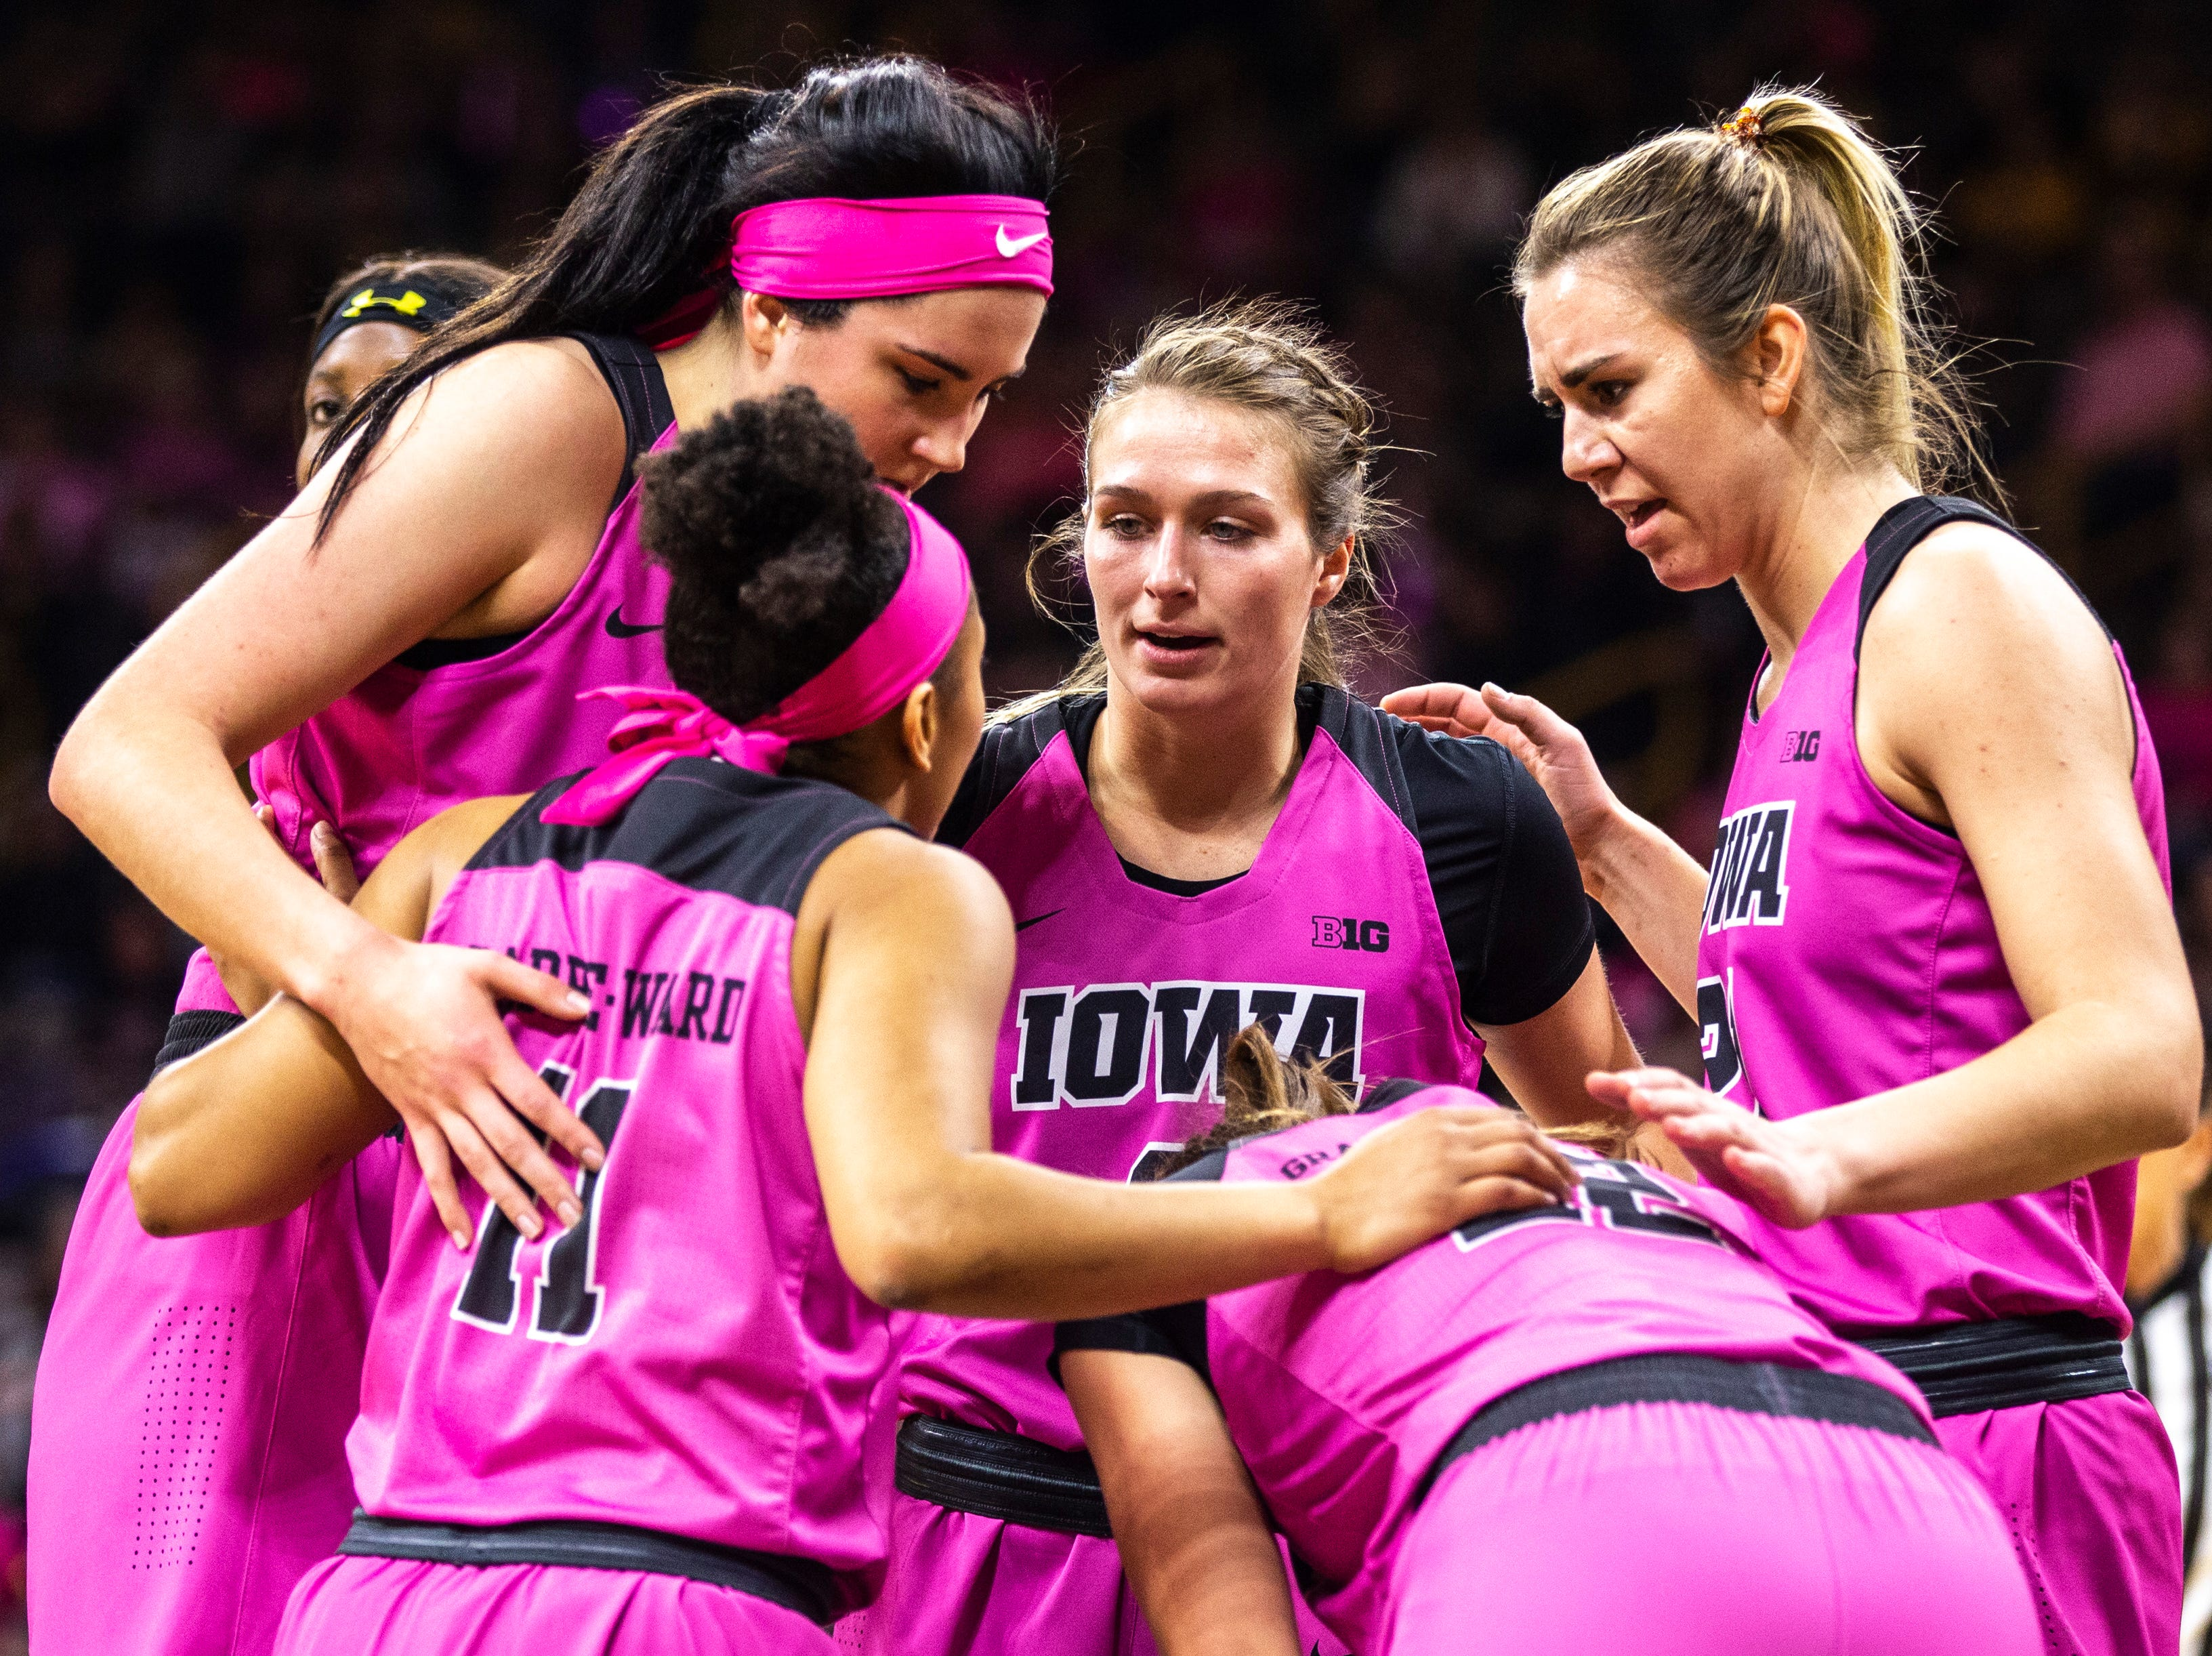 Iowa Hawkeyes Megan Gustafson (clockwise from top left) Makenzie Meyer, Hannah Stewart, Kathleen Doyle and  Tania Davis huddle during a NCAA Big Ten Conference women's basketball game on Sunday, Feb. 17, 2019 at Carver-Hawkeye Arena in Iowa City, Iowa.